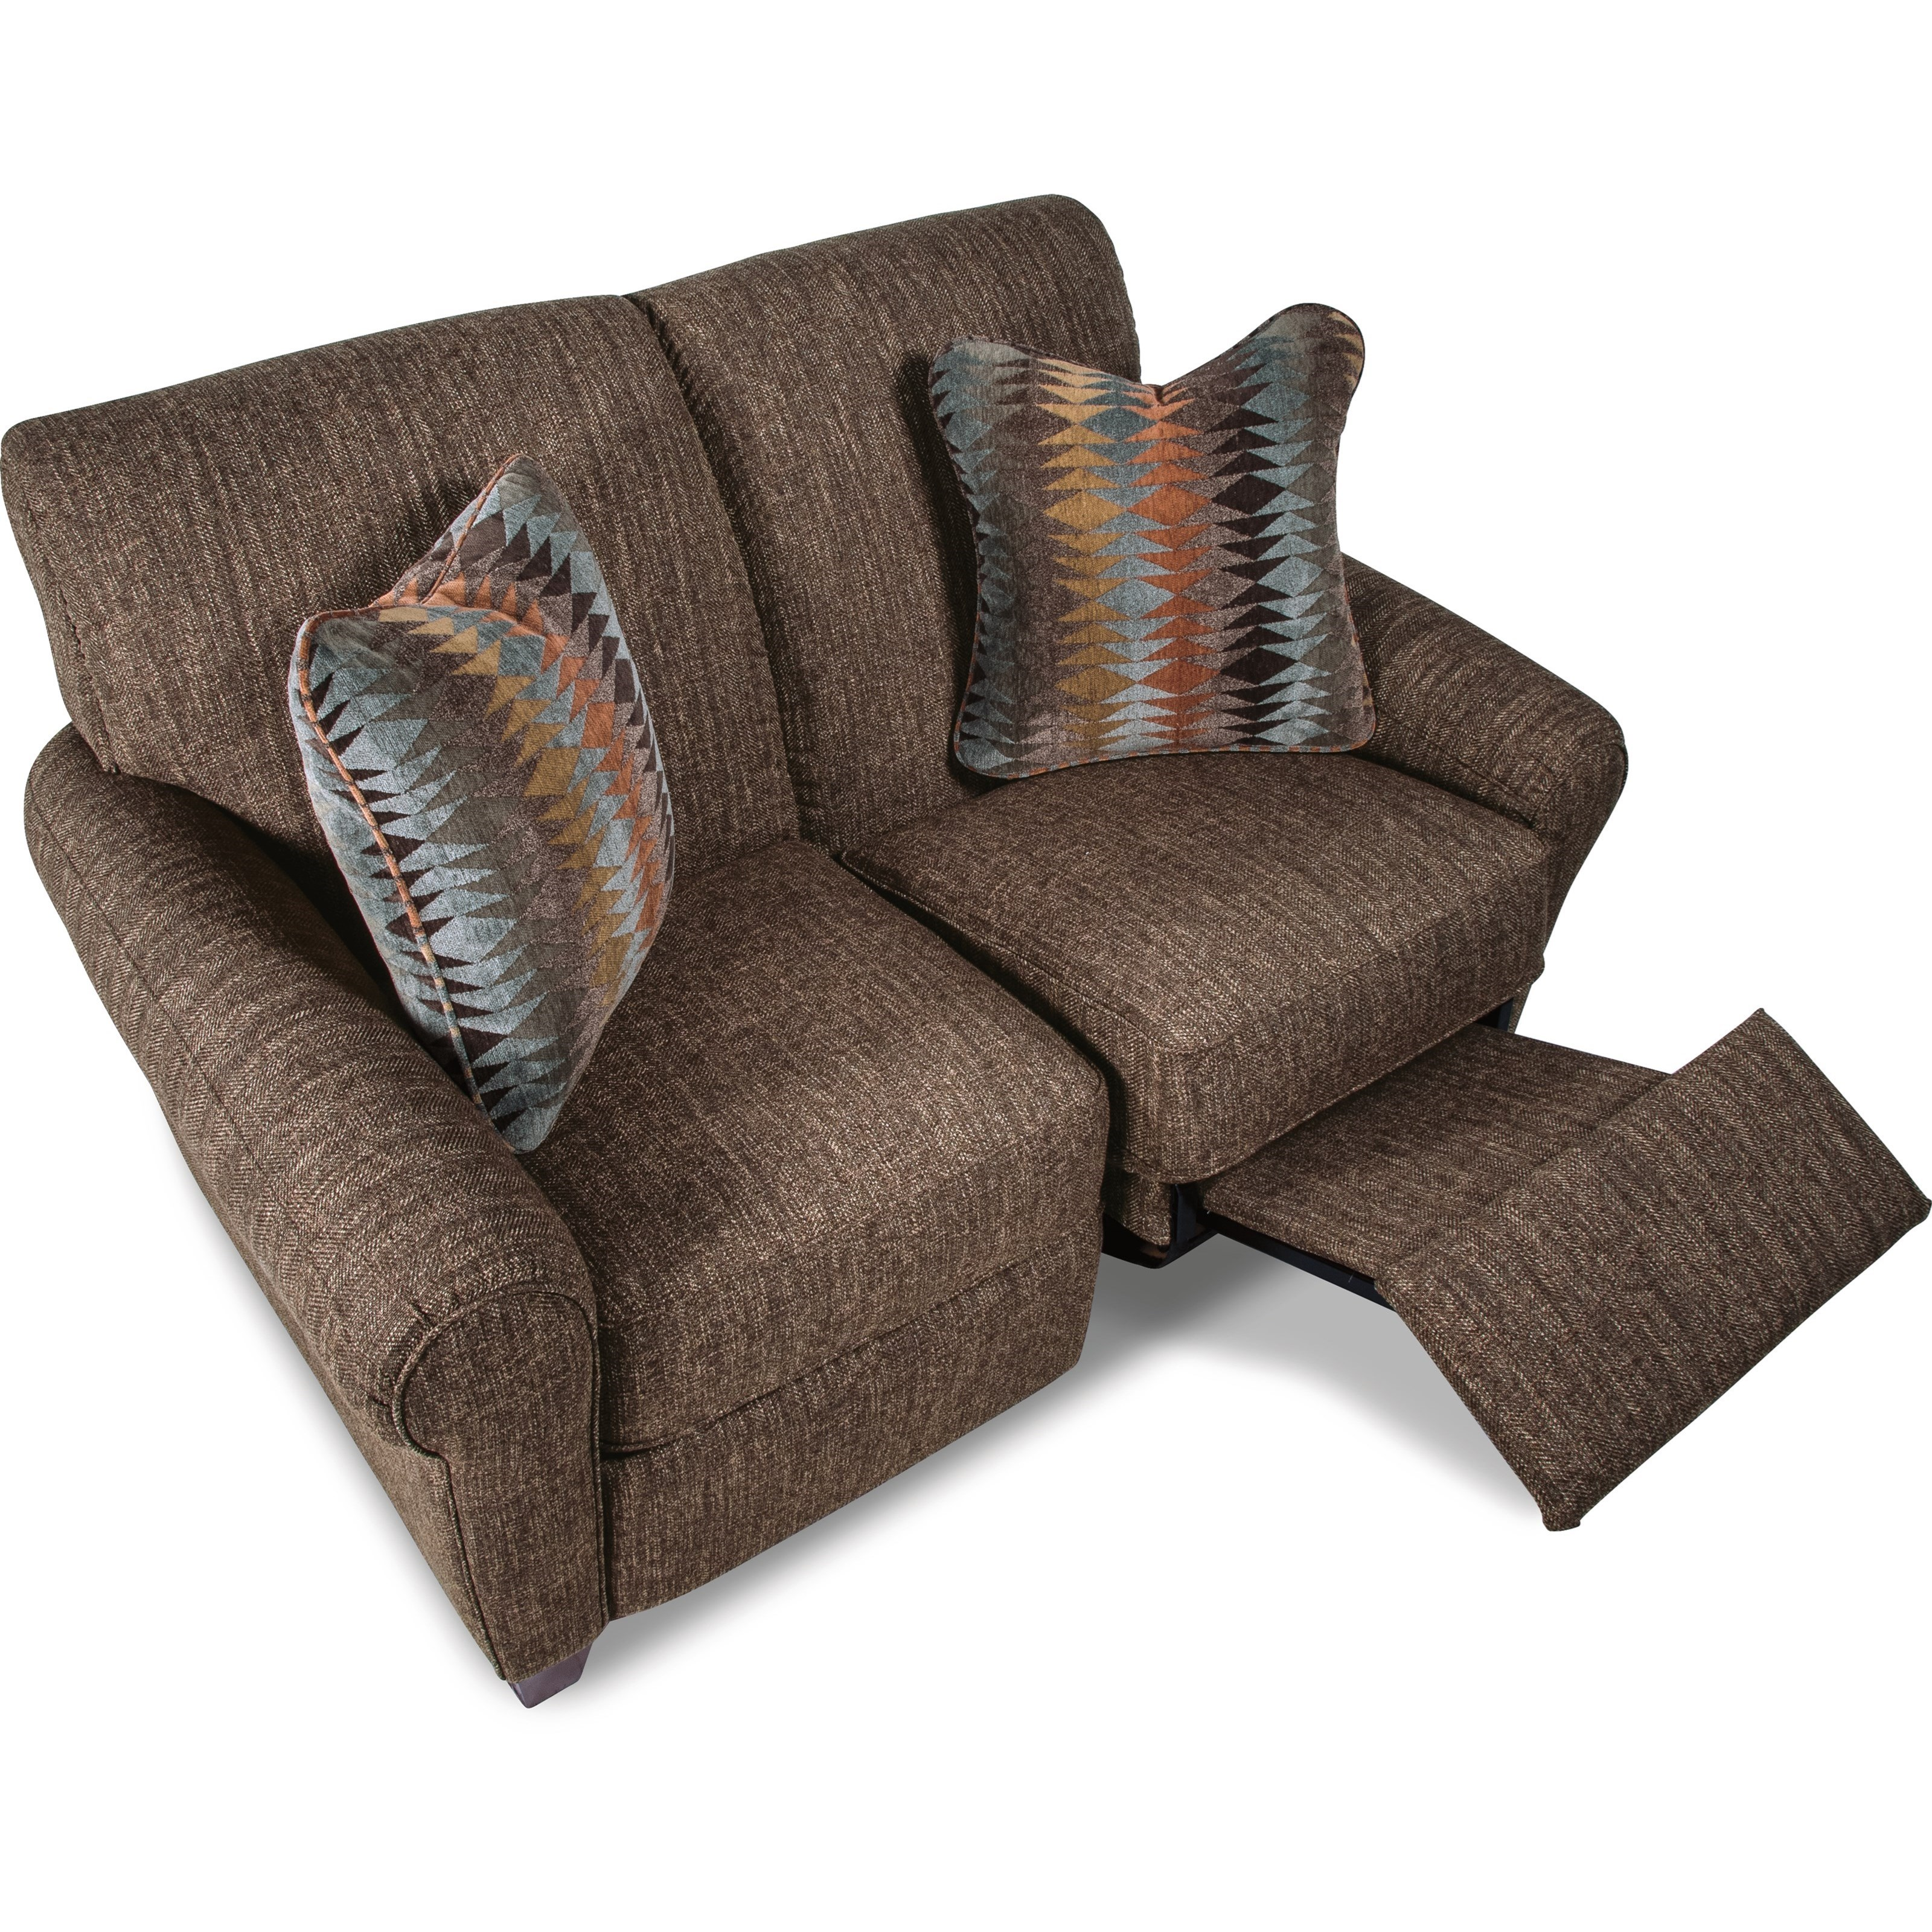 Duo Power Reclining Loveseat With Usb Charging Ports By